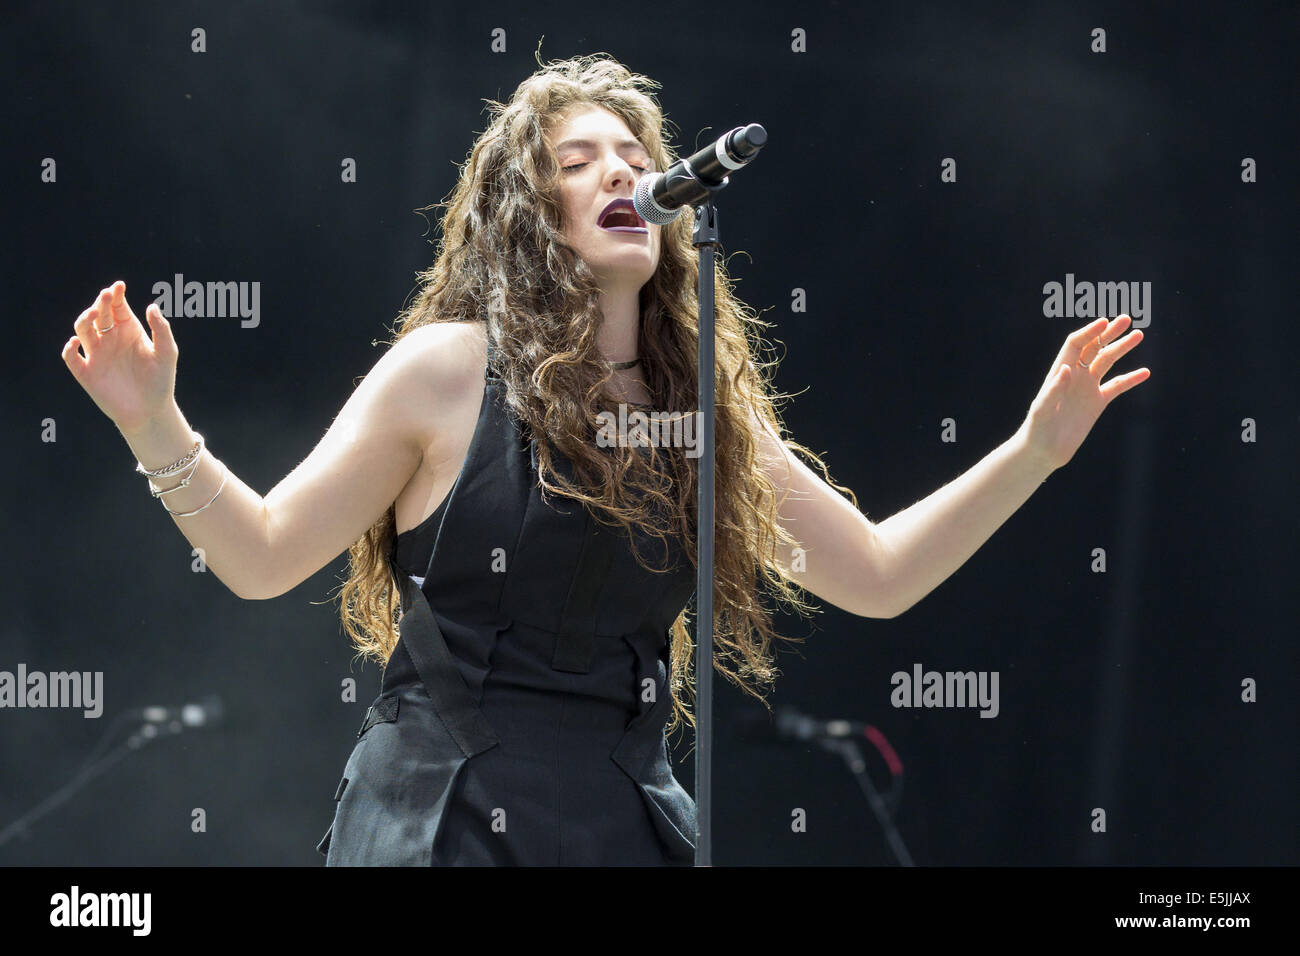 Chicago, Illinois, USA. 1st Aug, 2014. Vocalist LORDE performs live at the 2014 Lollapalooza Music Festival in Chicago, Stock Photo